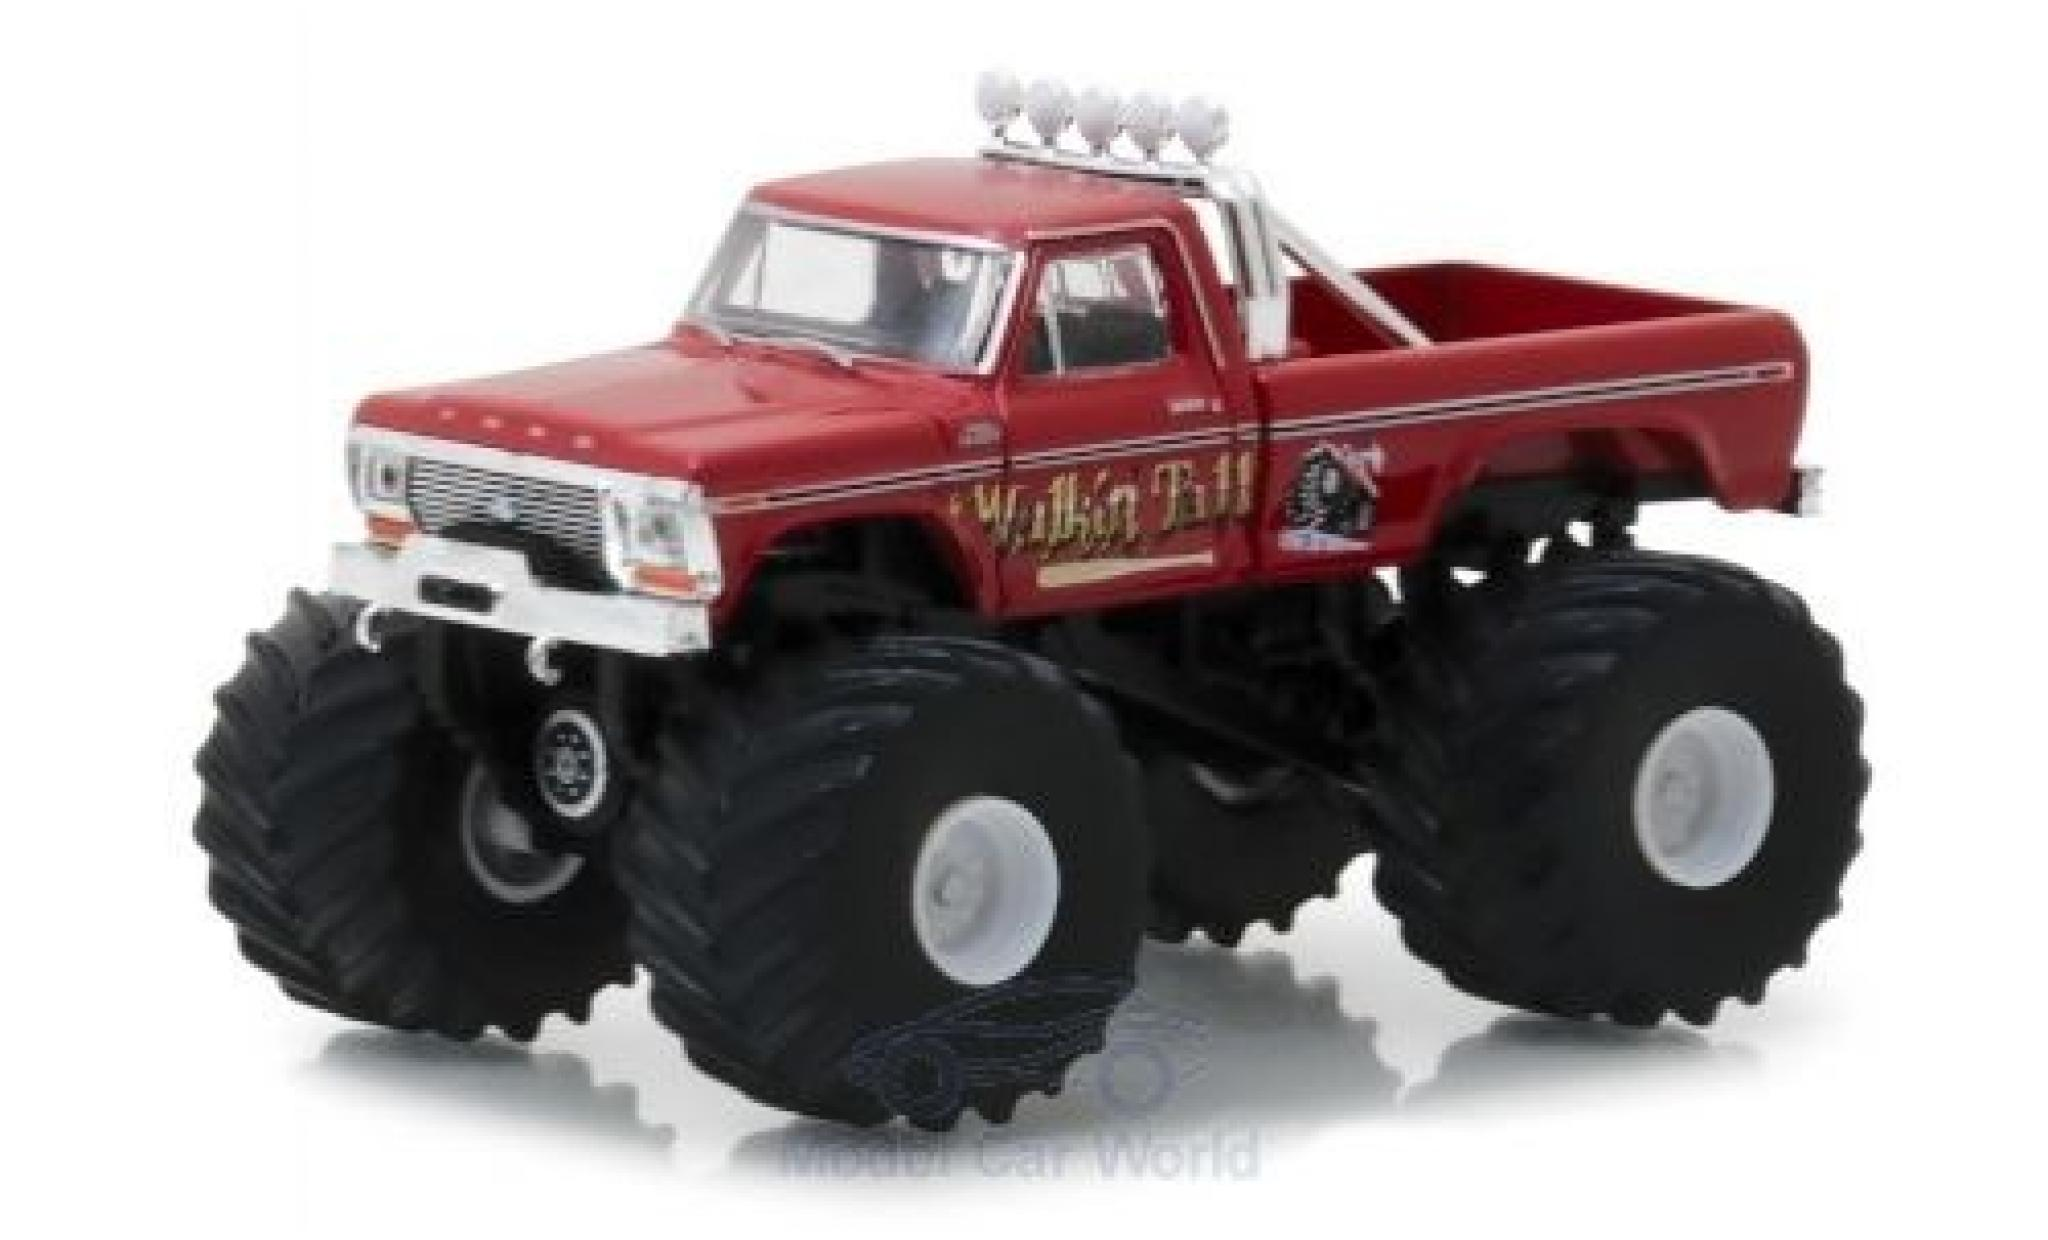 Ford F-250 1/64 Greenlight Monster Truck rouge Walkin Tall 1979